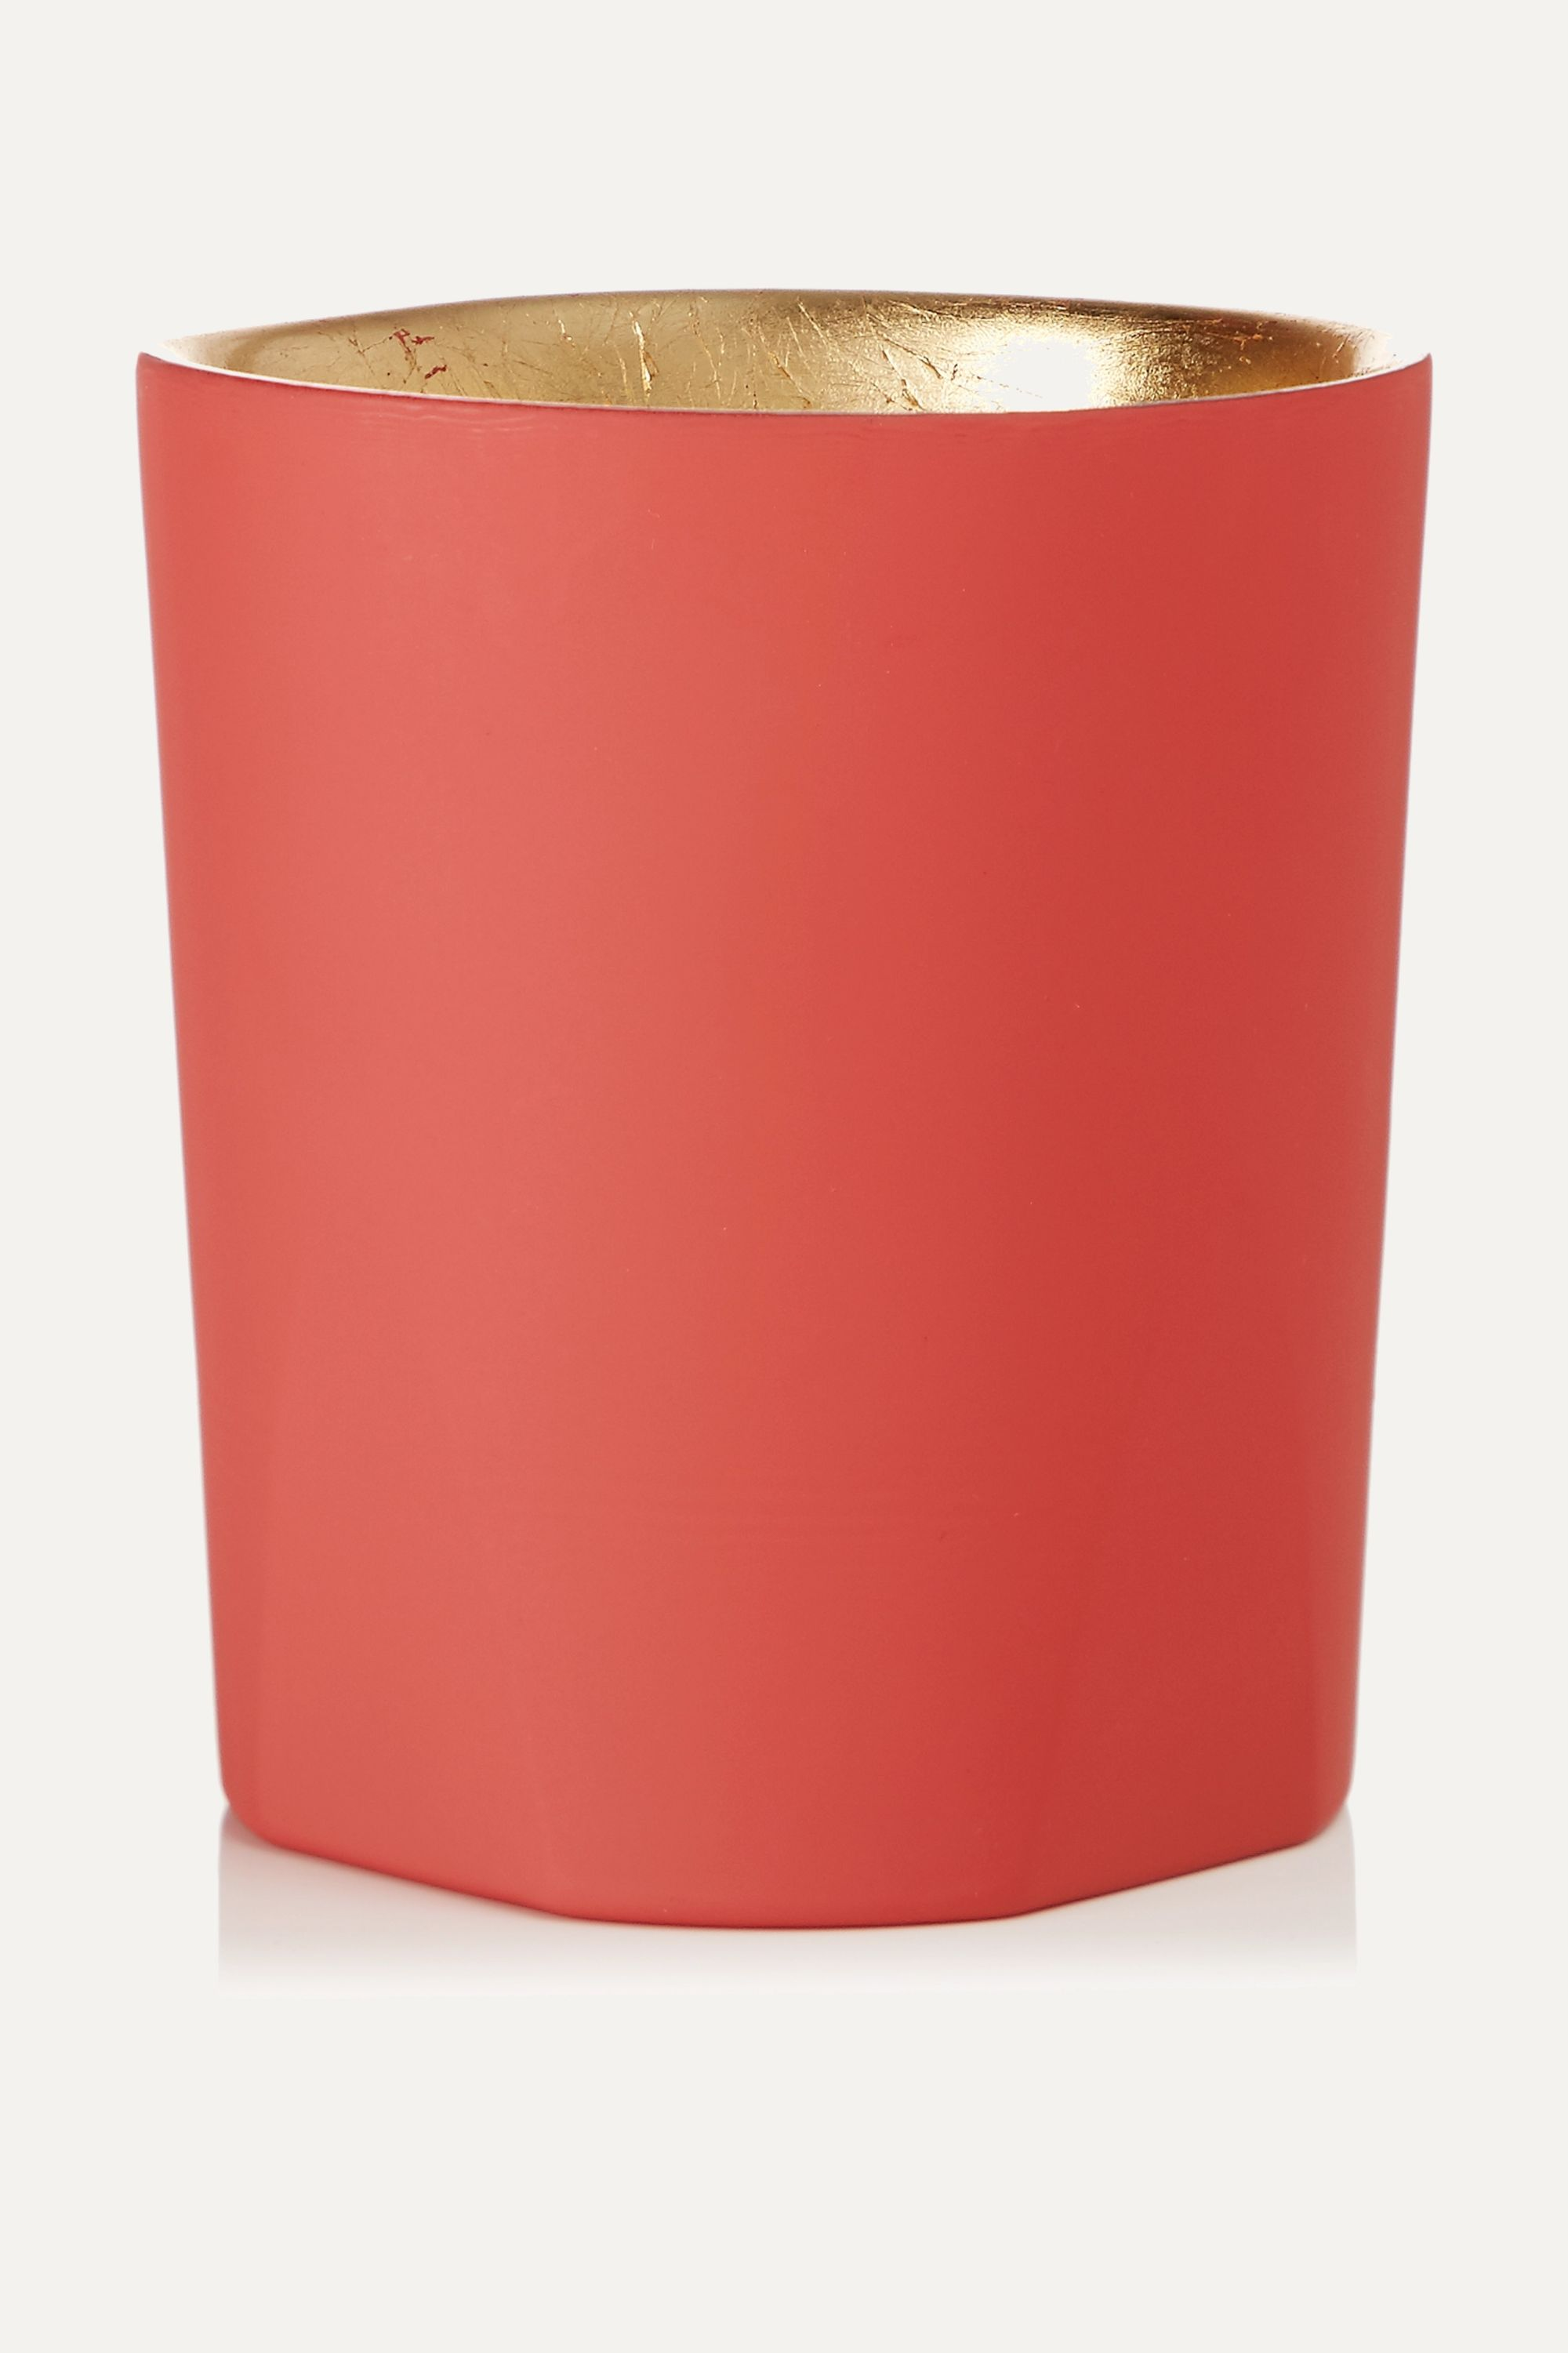 Cire Trudon Lumière scented candle, 270g